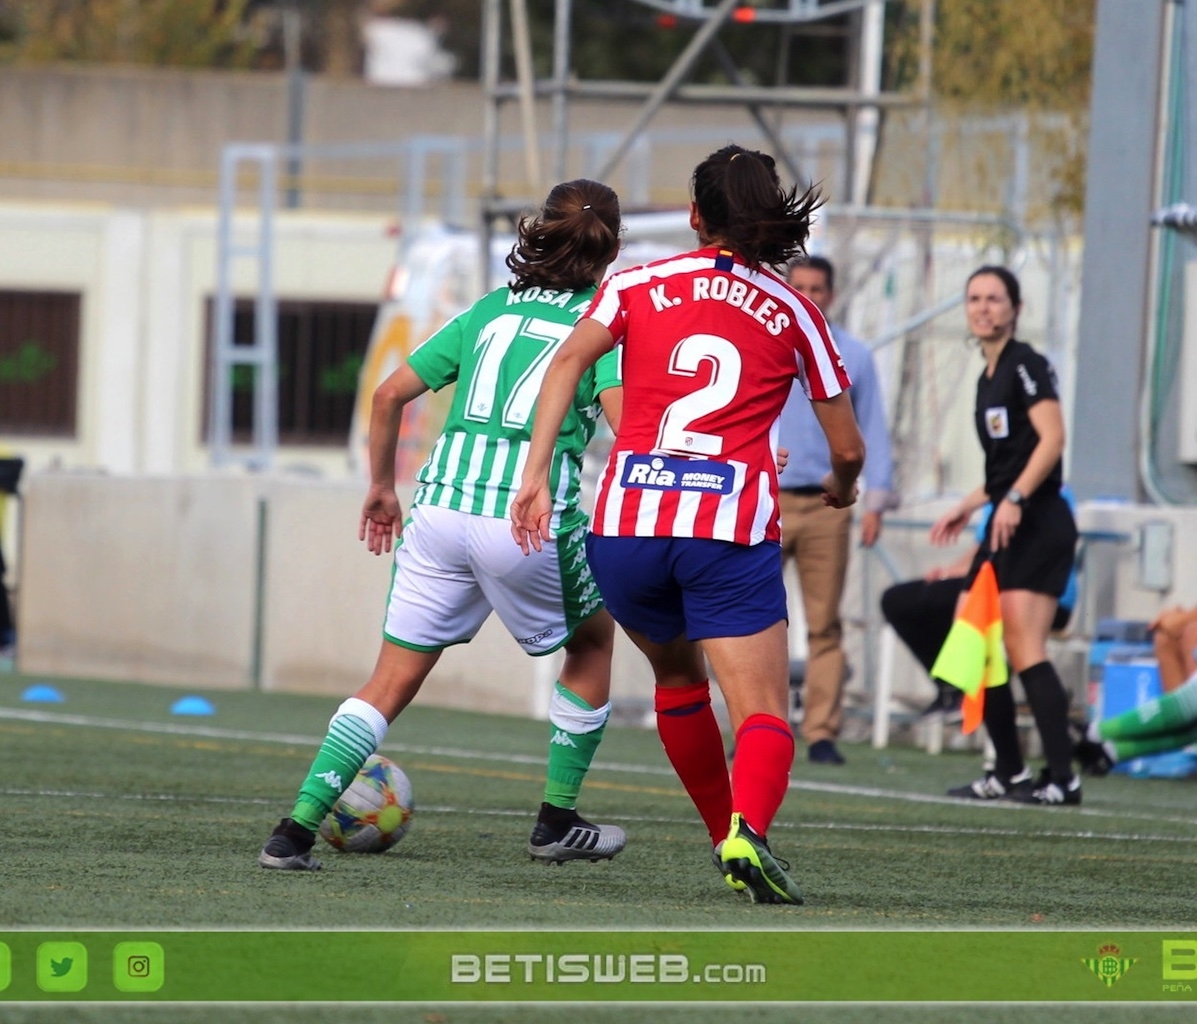 J11 Betis Fem - At_054